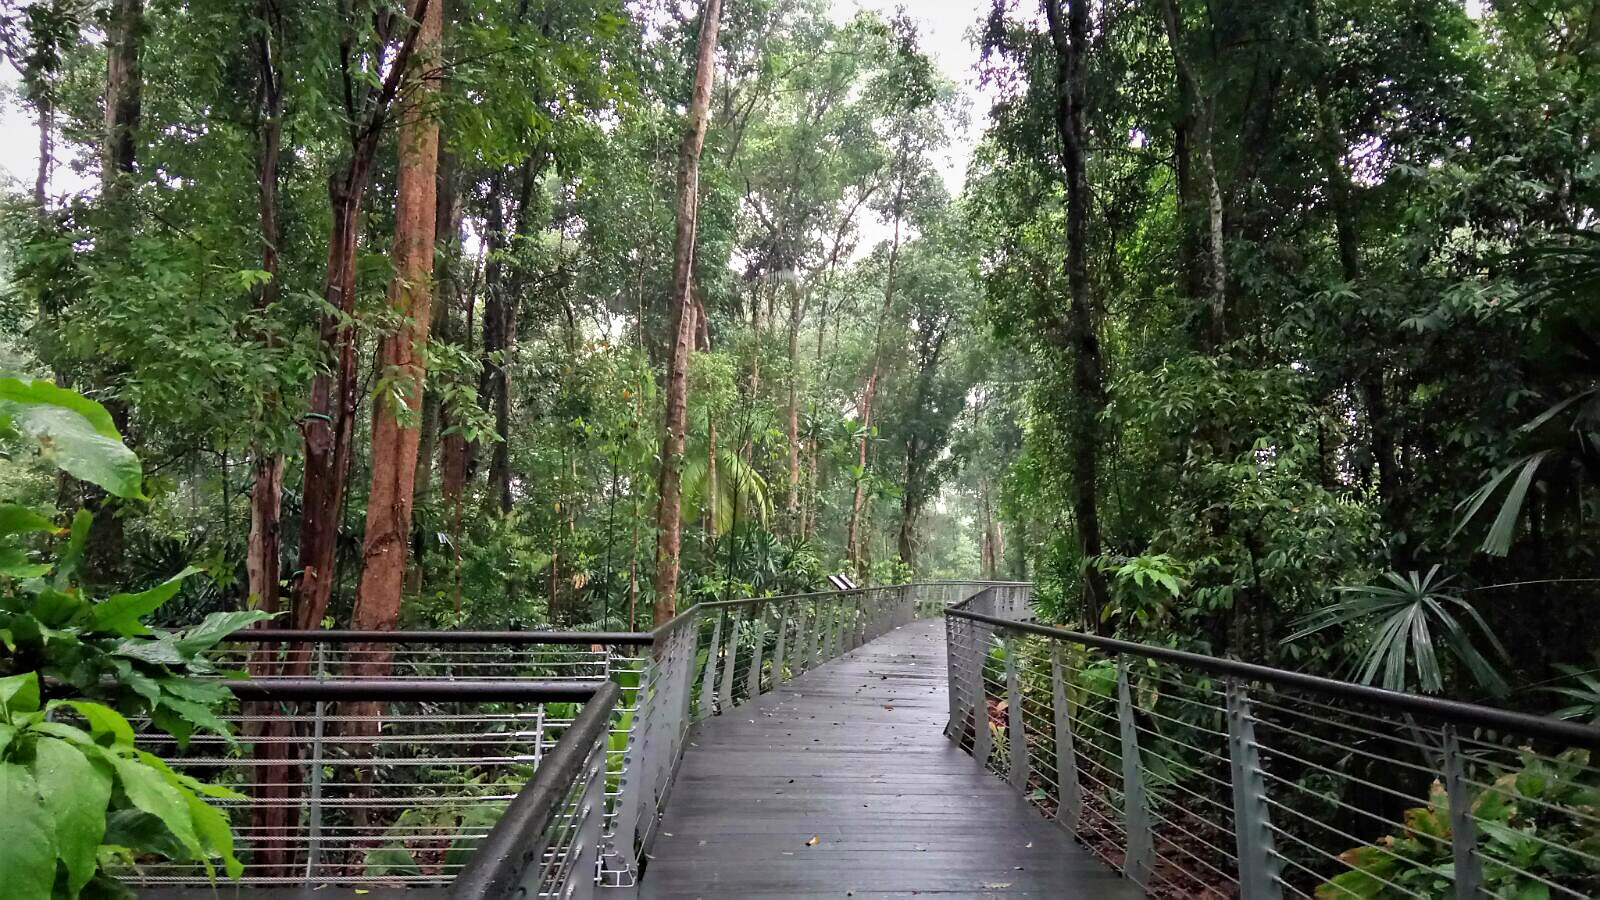 SPH Walk of Giants at the Learning Forest, Singapore Botanic Gardens Photo by Stephen Caffyn Landscape Design (SCLD)